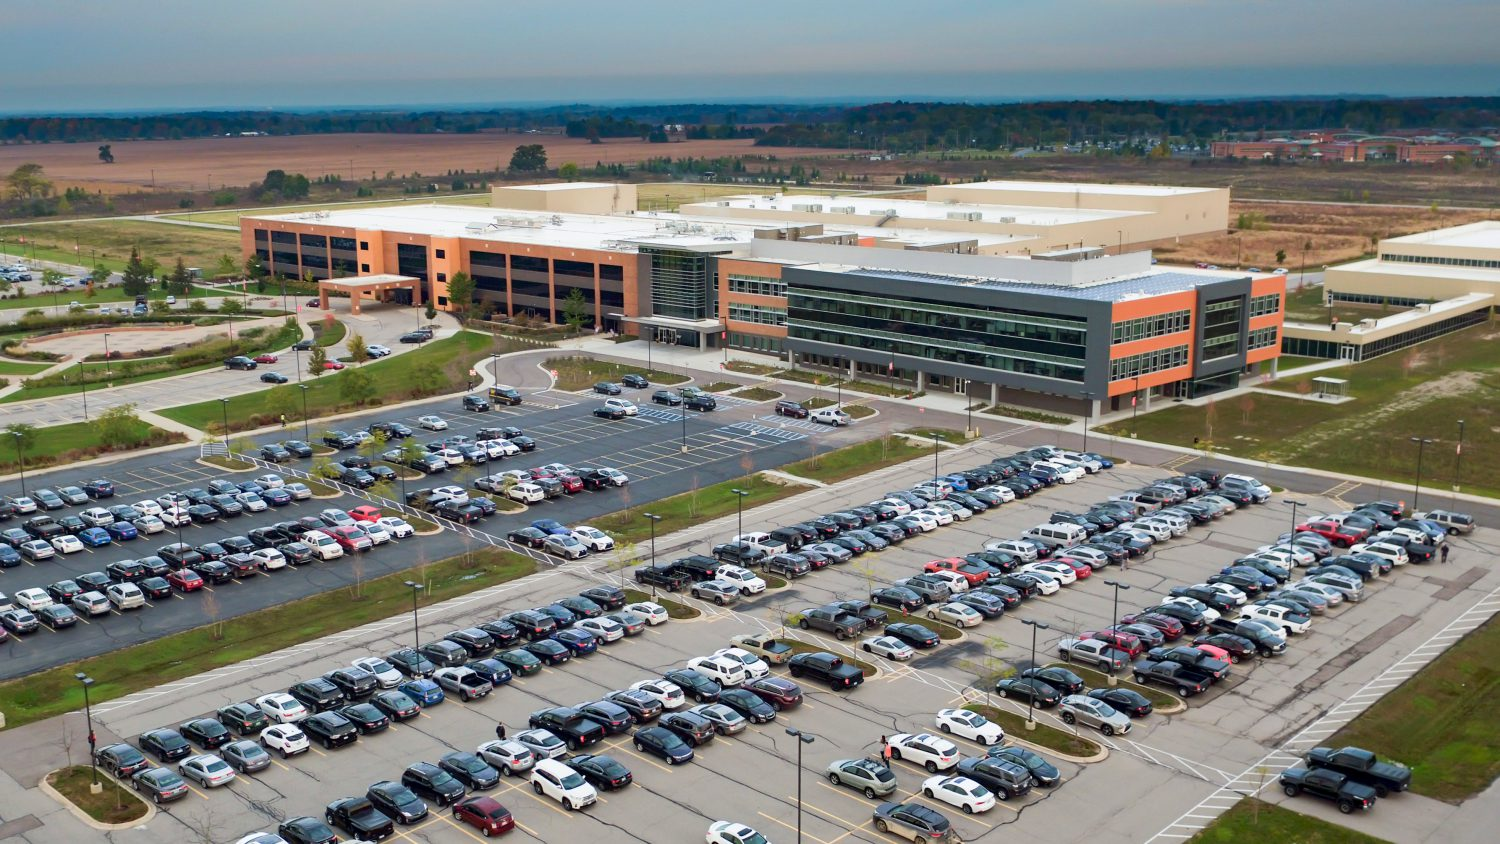 Improving Sustainability, One Building at a Time - Toyota